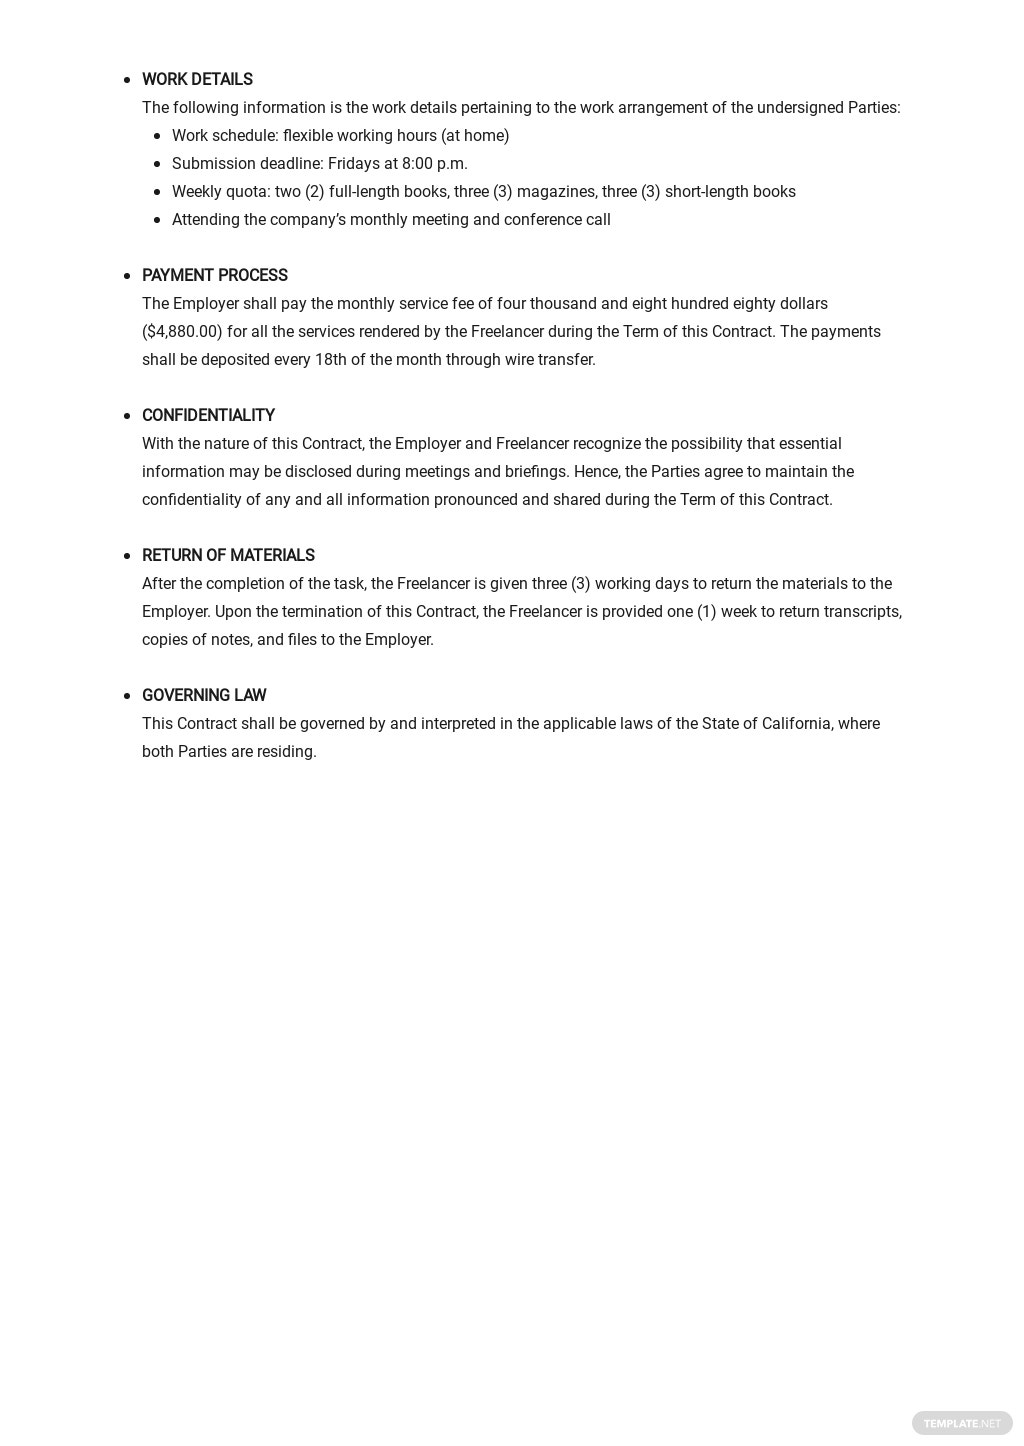 Freelance Employment Contract Template  2.jpe